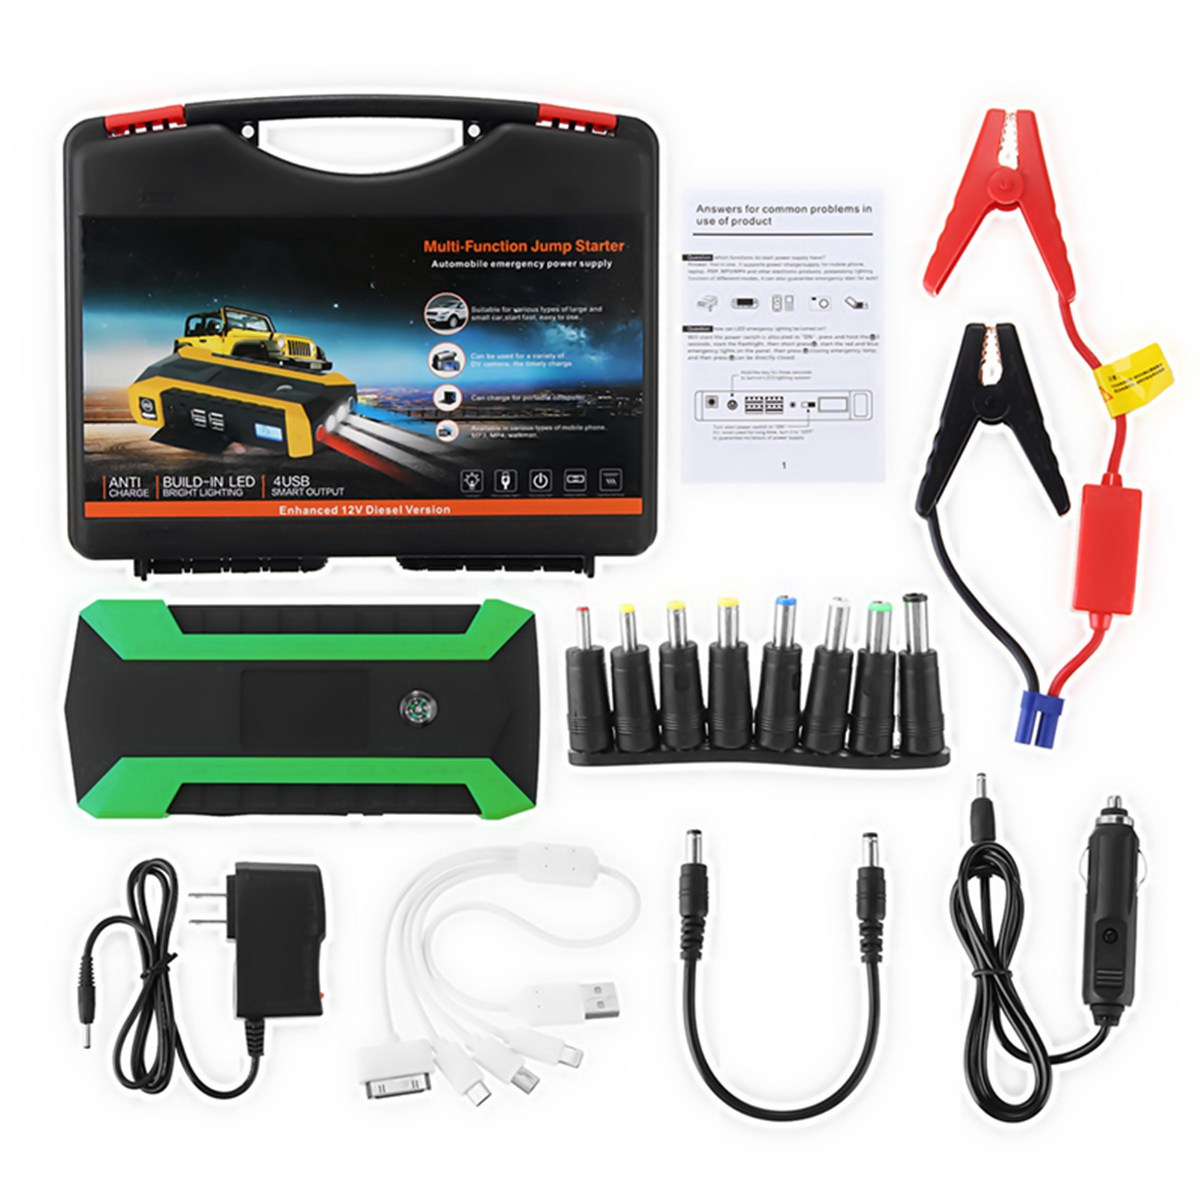 Car Jump Starter 89800mAh 12V 4USB Portable Car Battery Booster Charger Booster Power Bank Starting Device Car Starter 600A ootdty 69900mah 89800mah 4 usb portable car jump starter pack booster charger battery power bank 600a